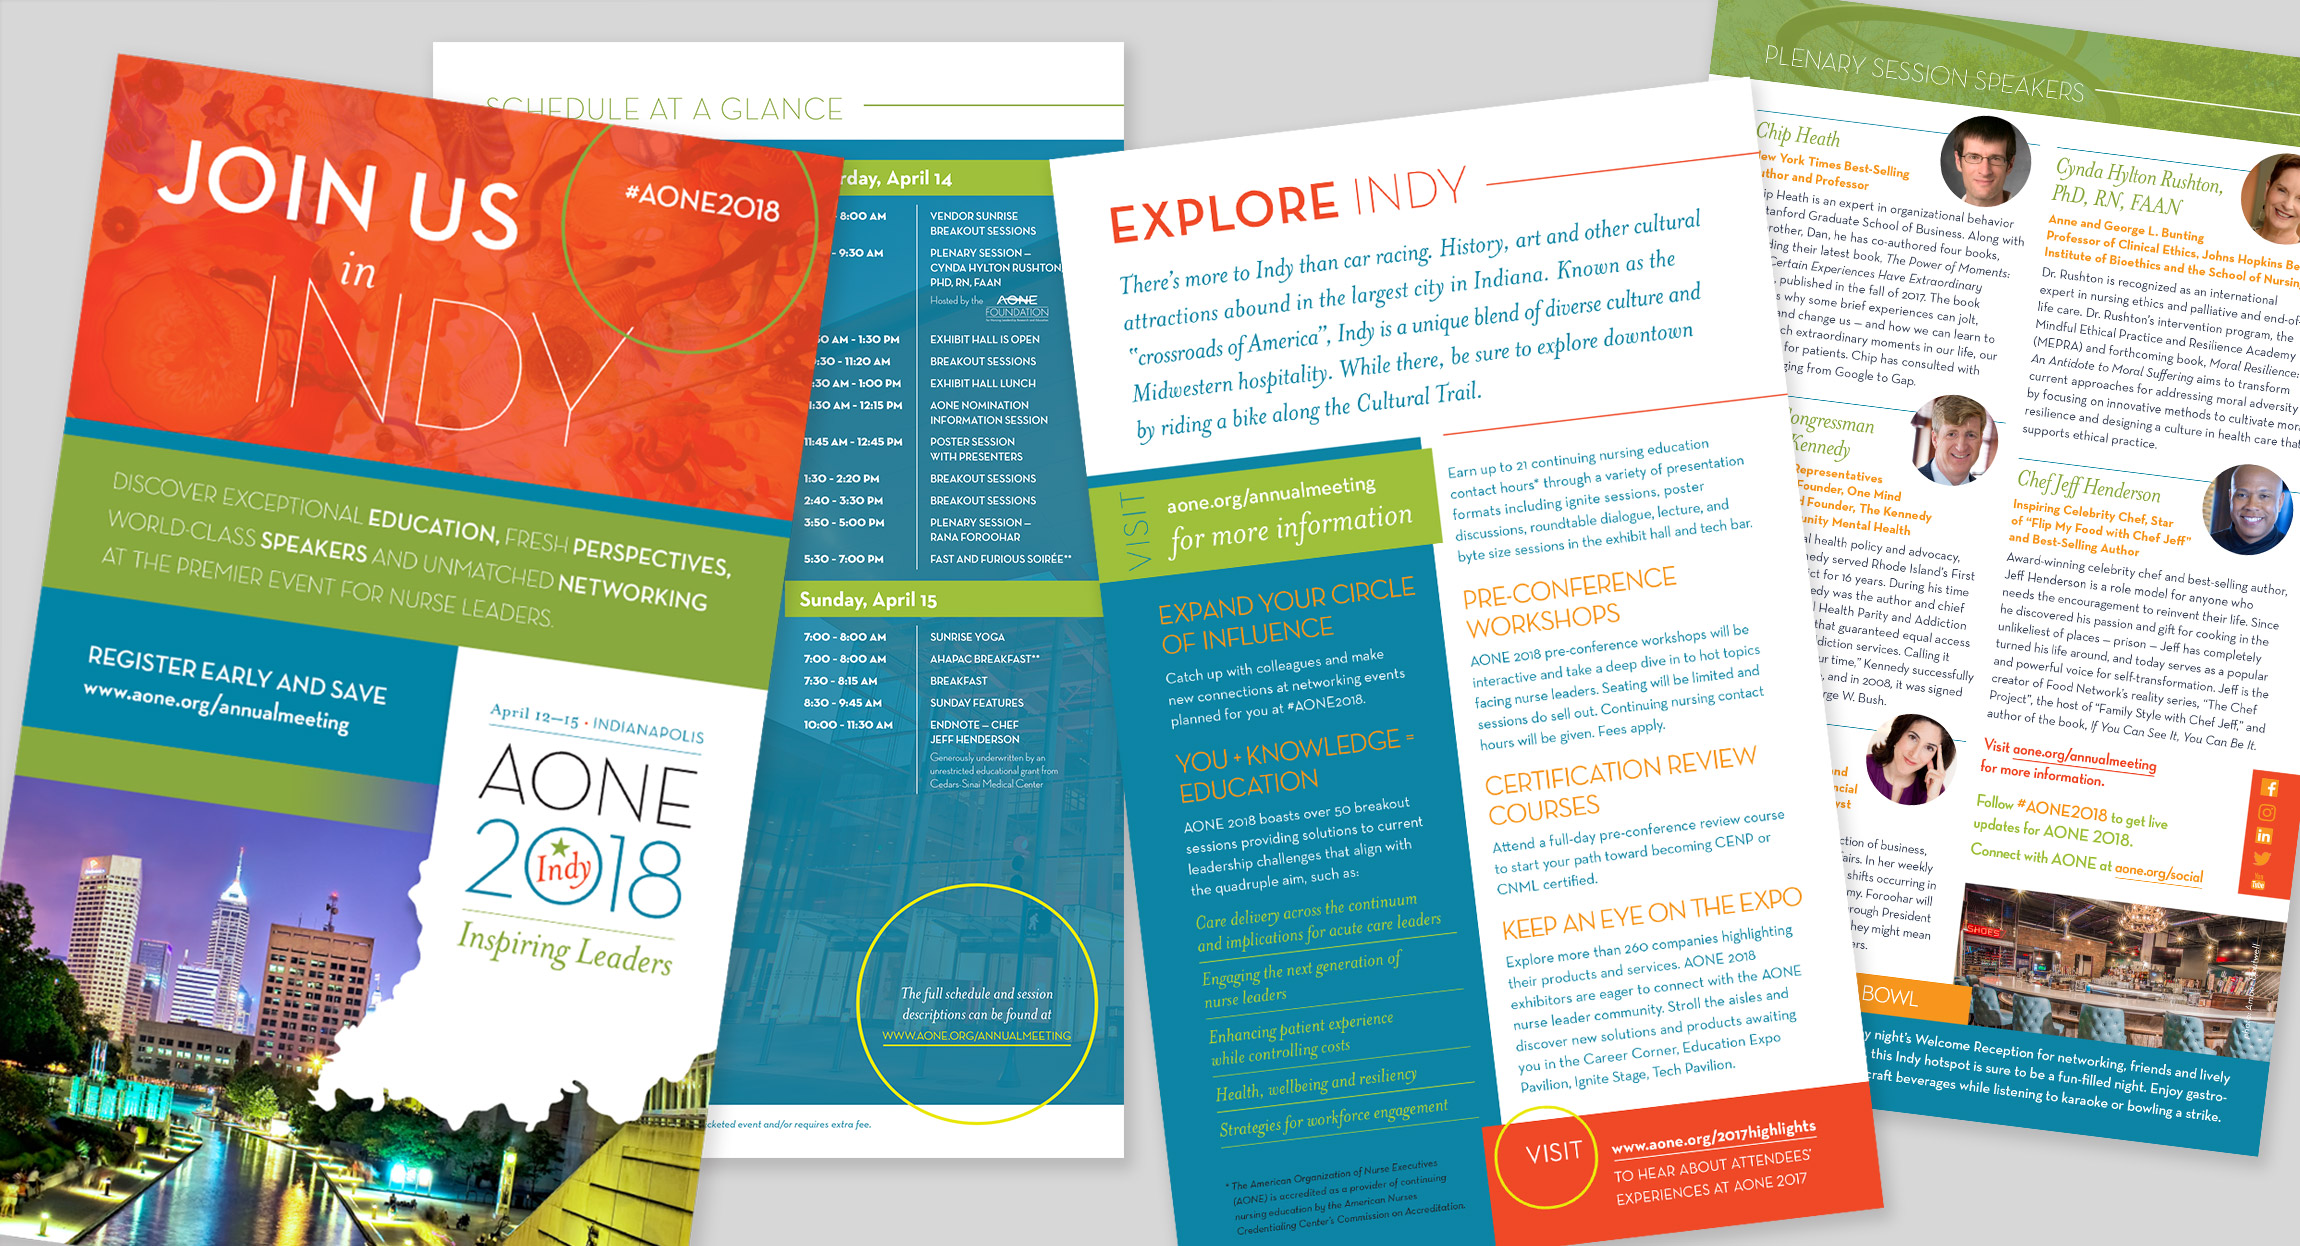 AONE 2018 Registration Brochure Design by Hughes Design